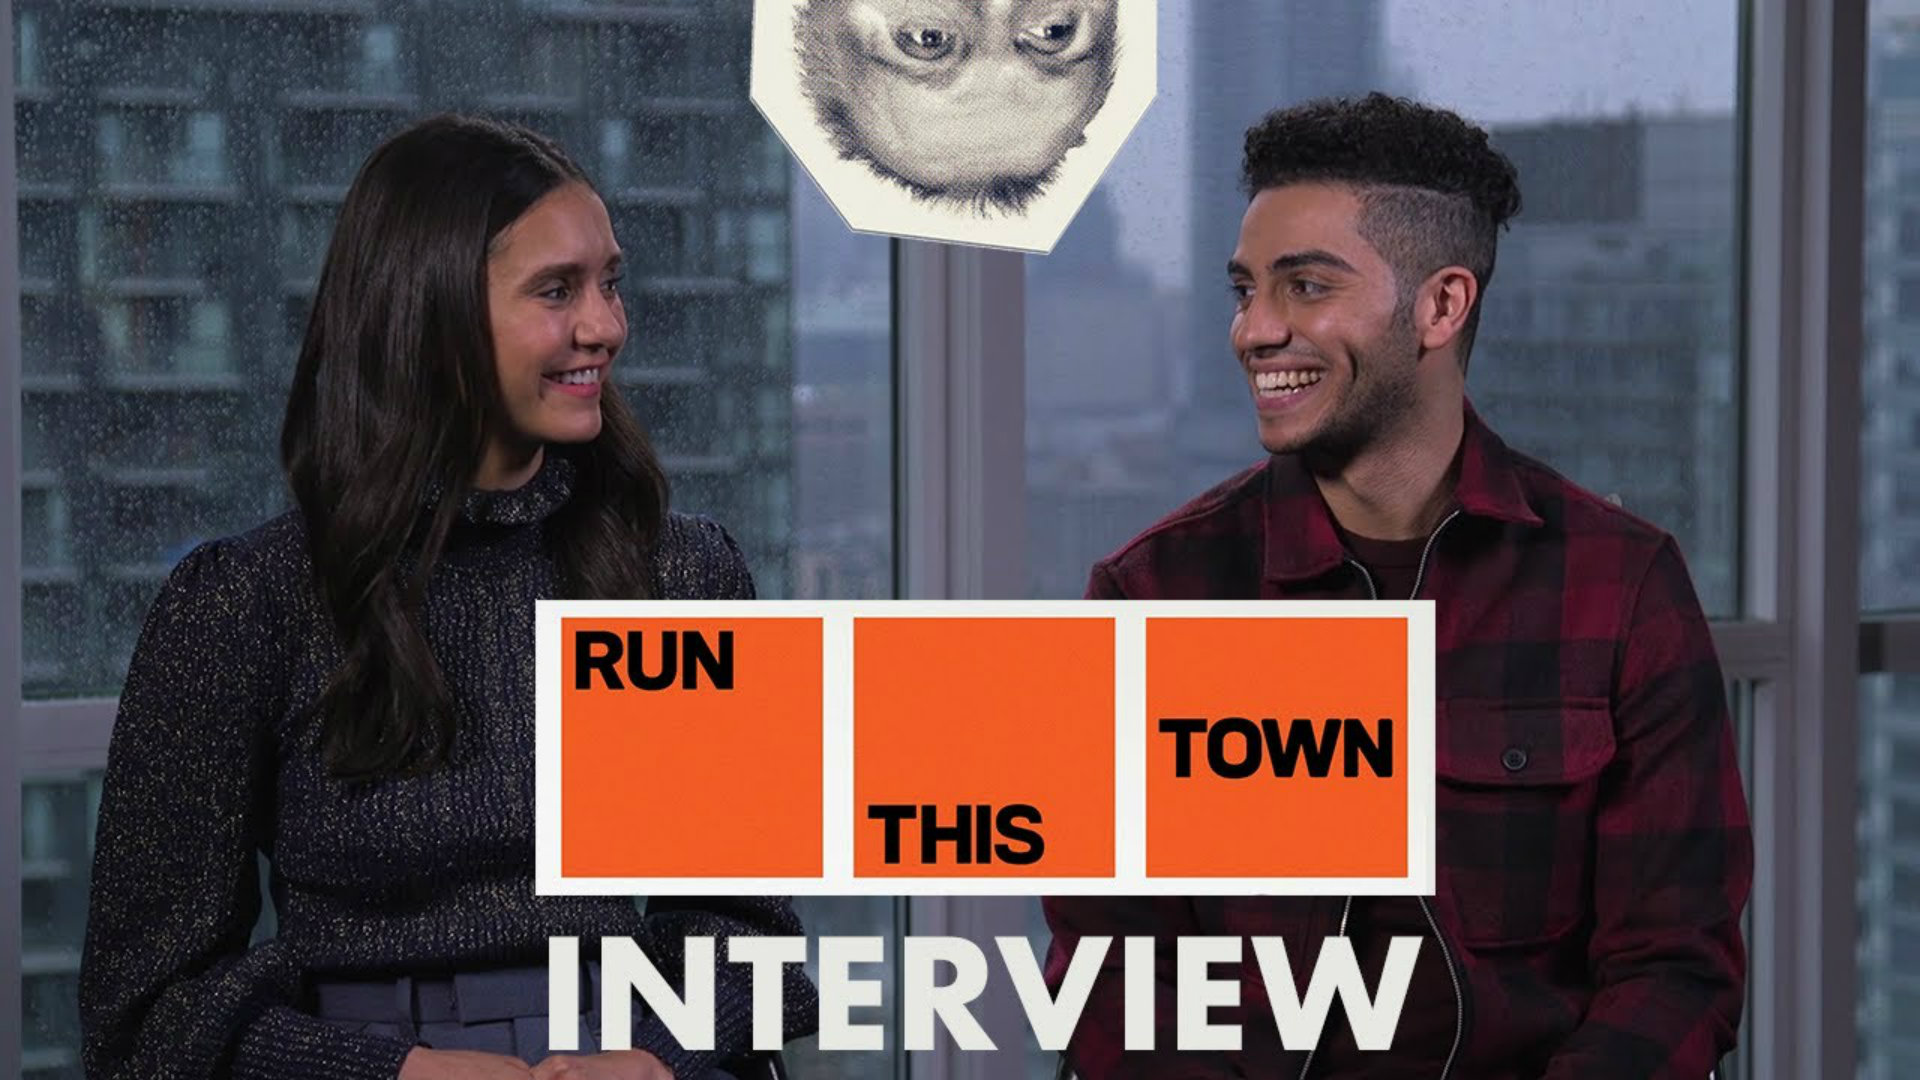 Run This Town Interview: Nina Dobrev & Mena Massoud Talk Rob Ford and Toronto